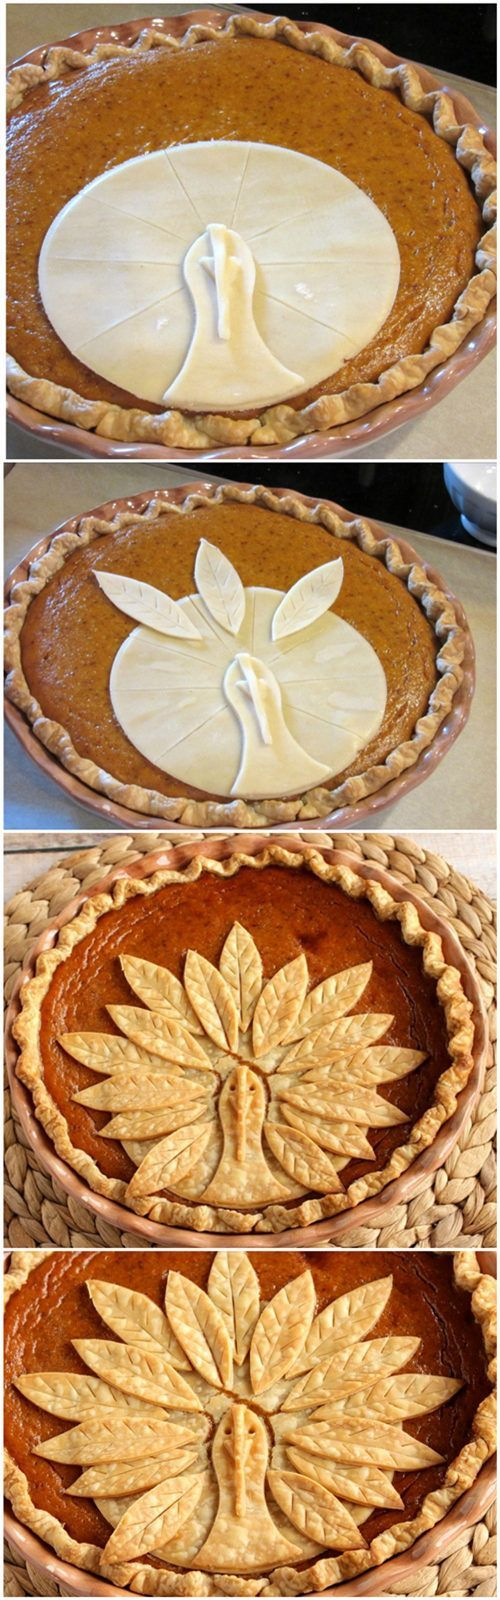 Adorable Turkey Crust Pumpkin Pie: